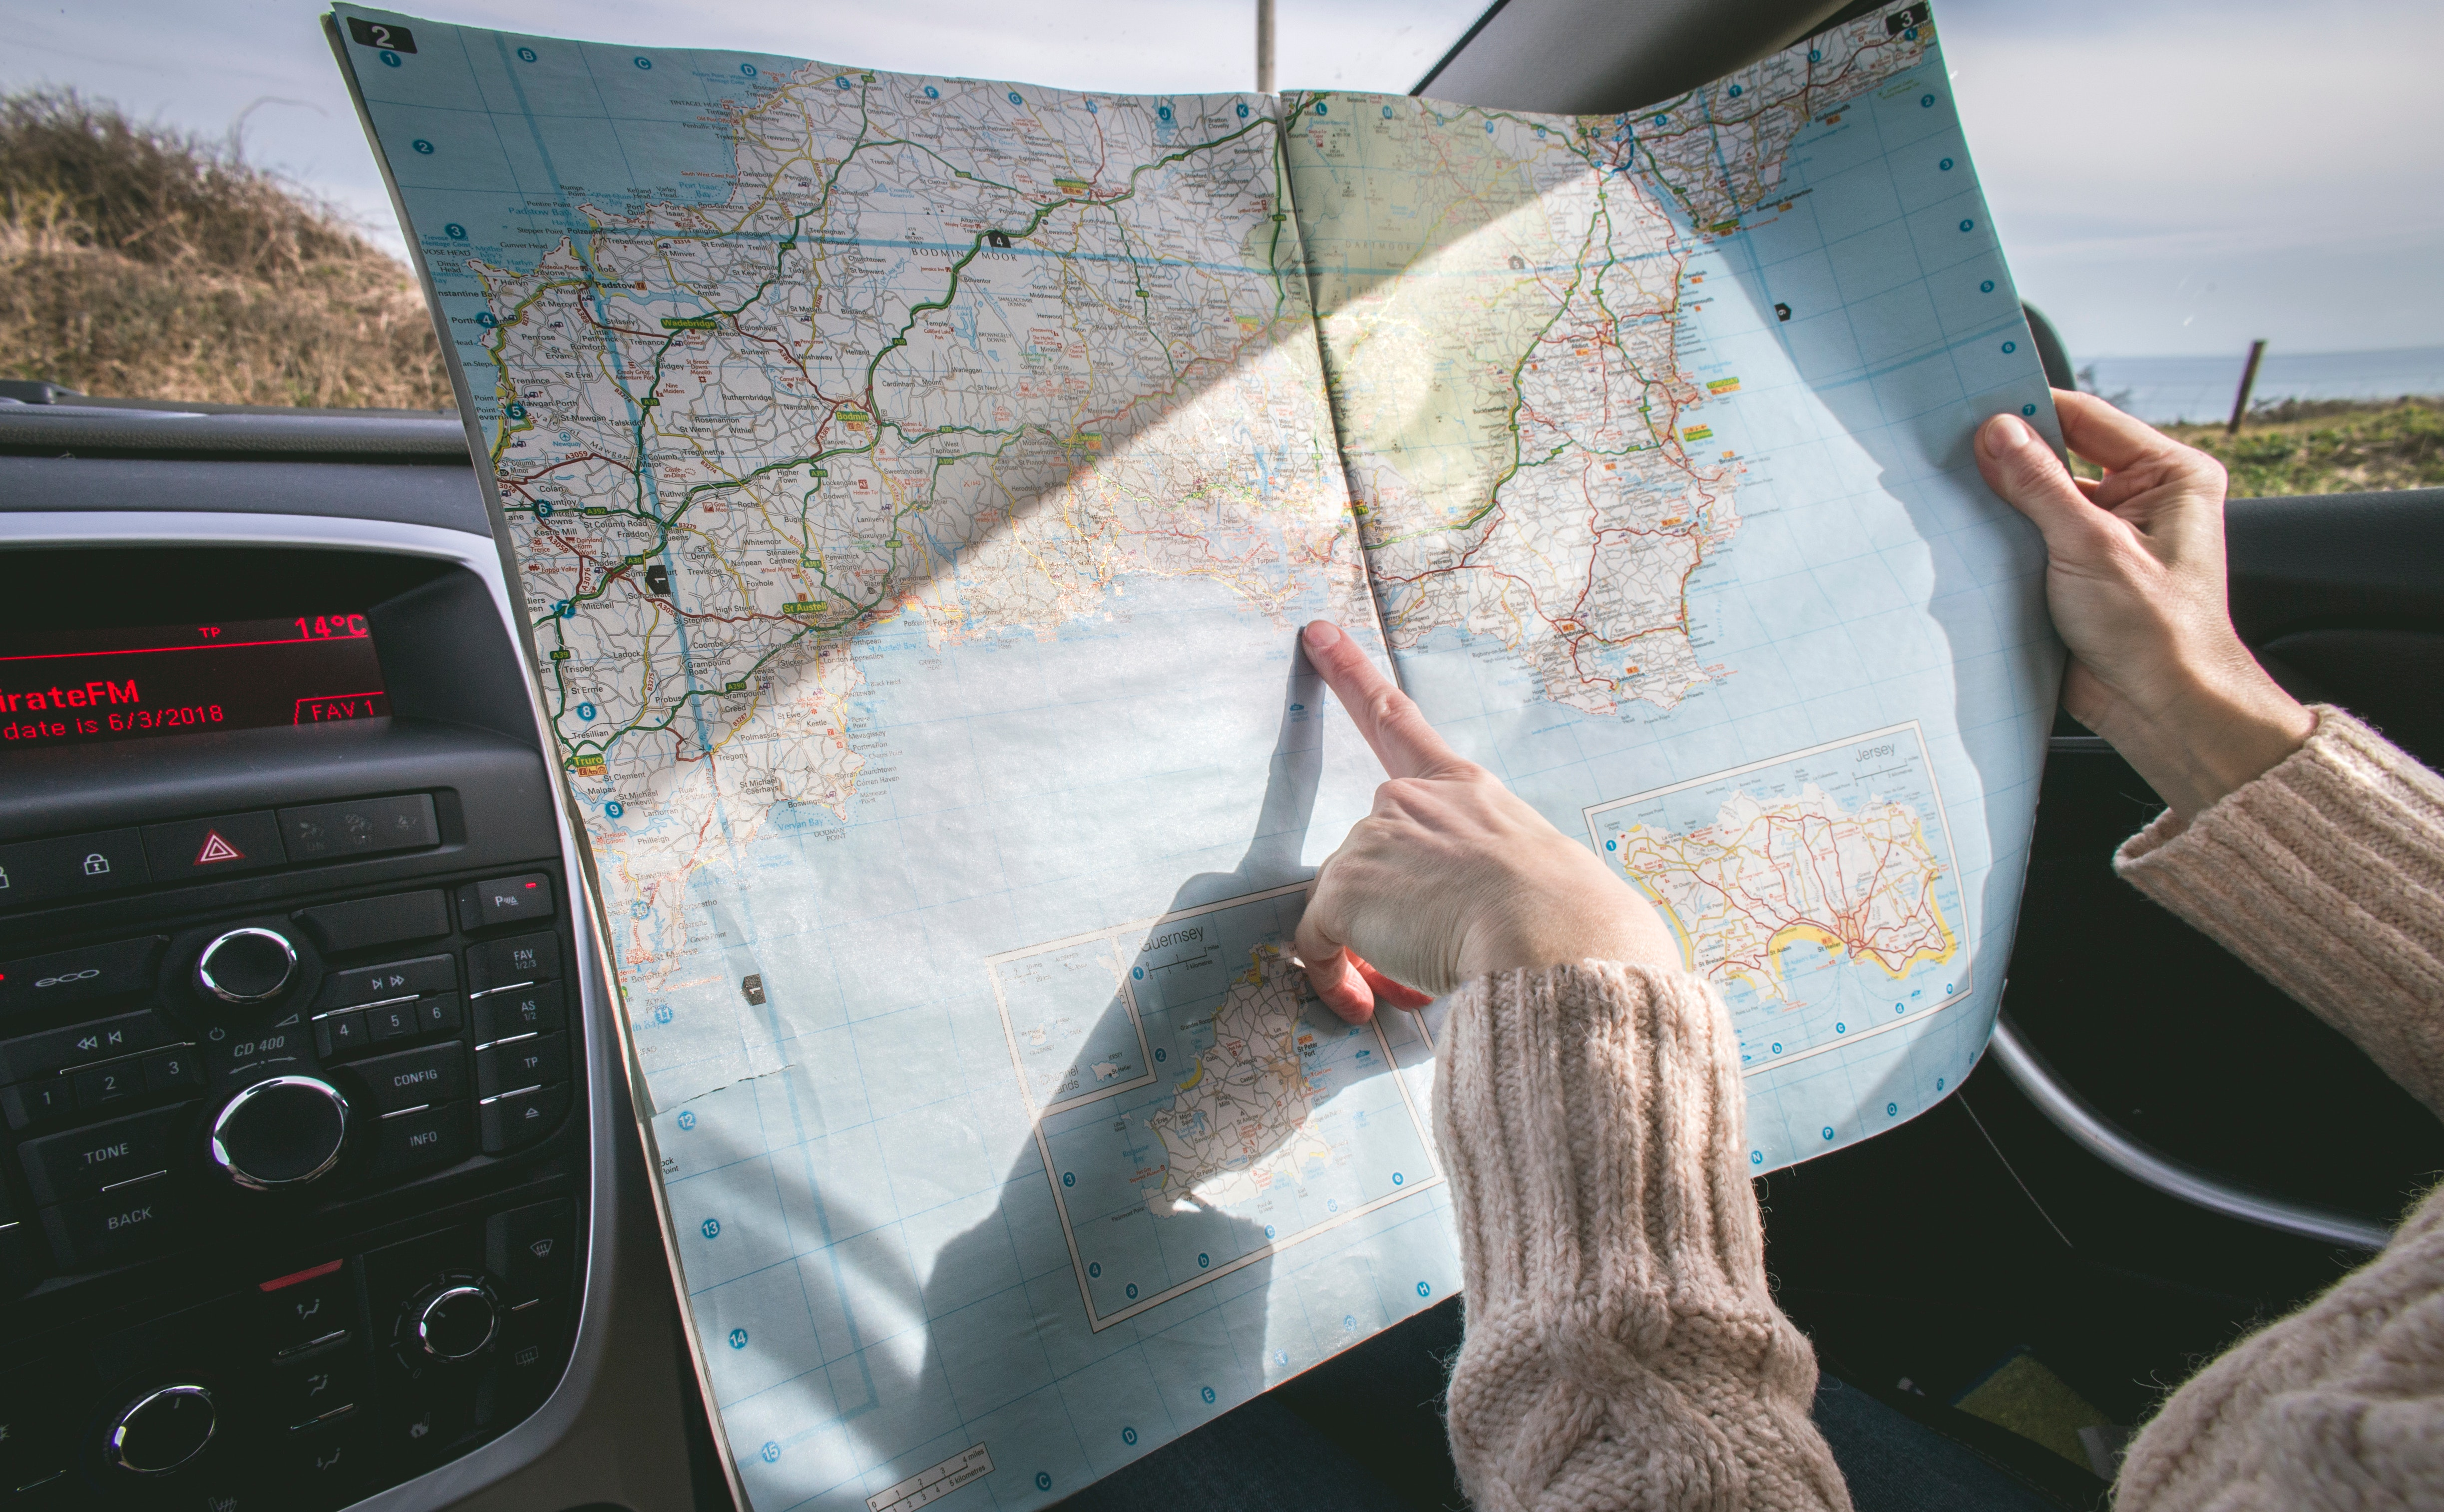 132125 download wallpaper Miscellanea, Miscellaneous, Journey, Hands, Map, Route screensavers and pictures for free